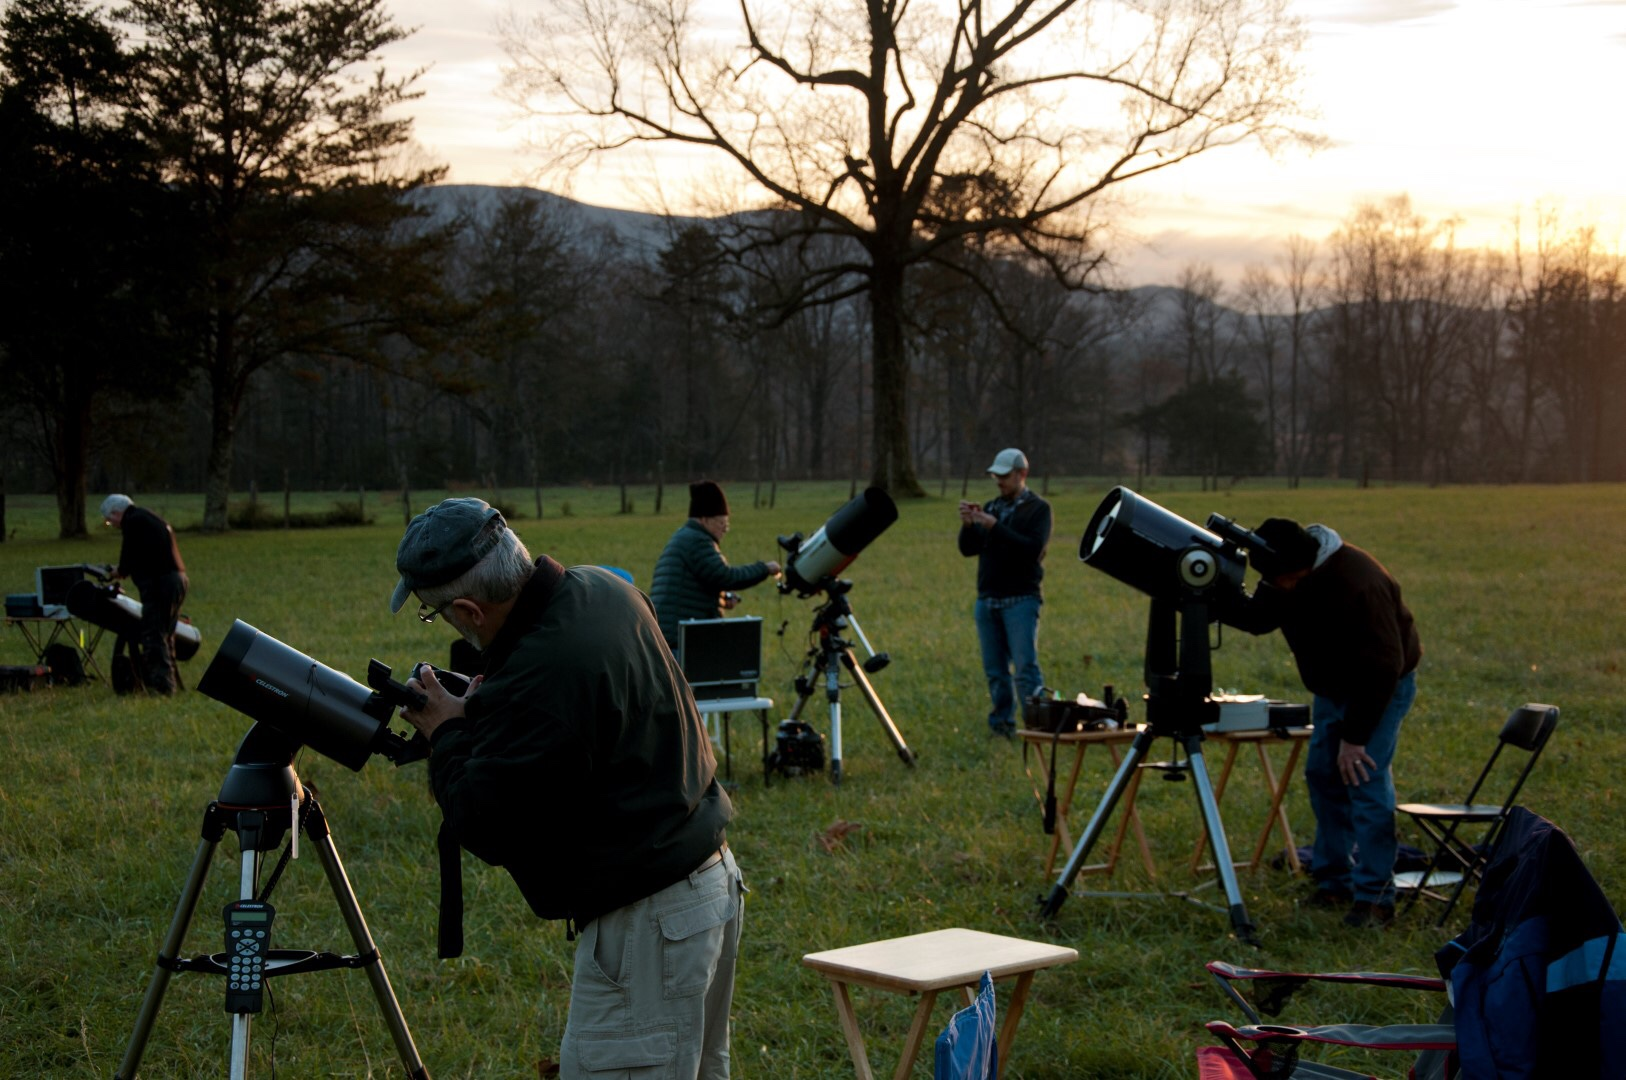 Park Hosts Star Gazing Event at Cades Cove